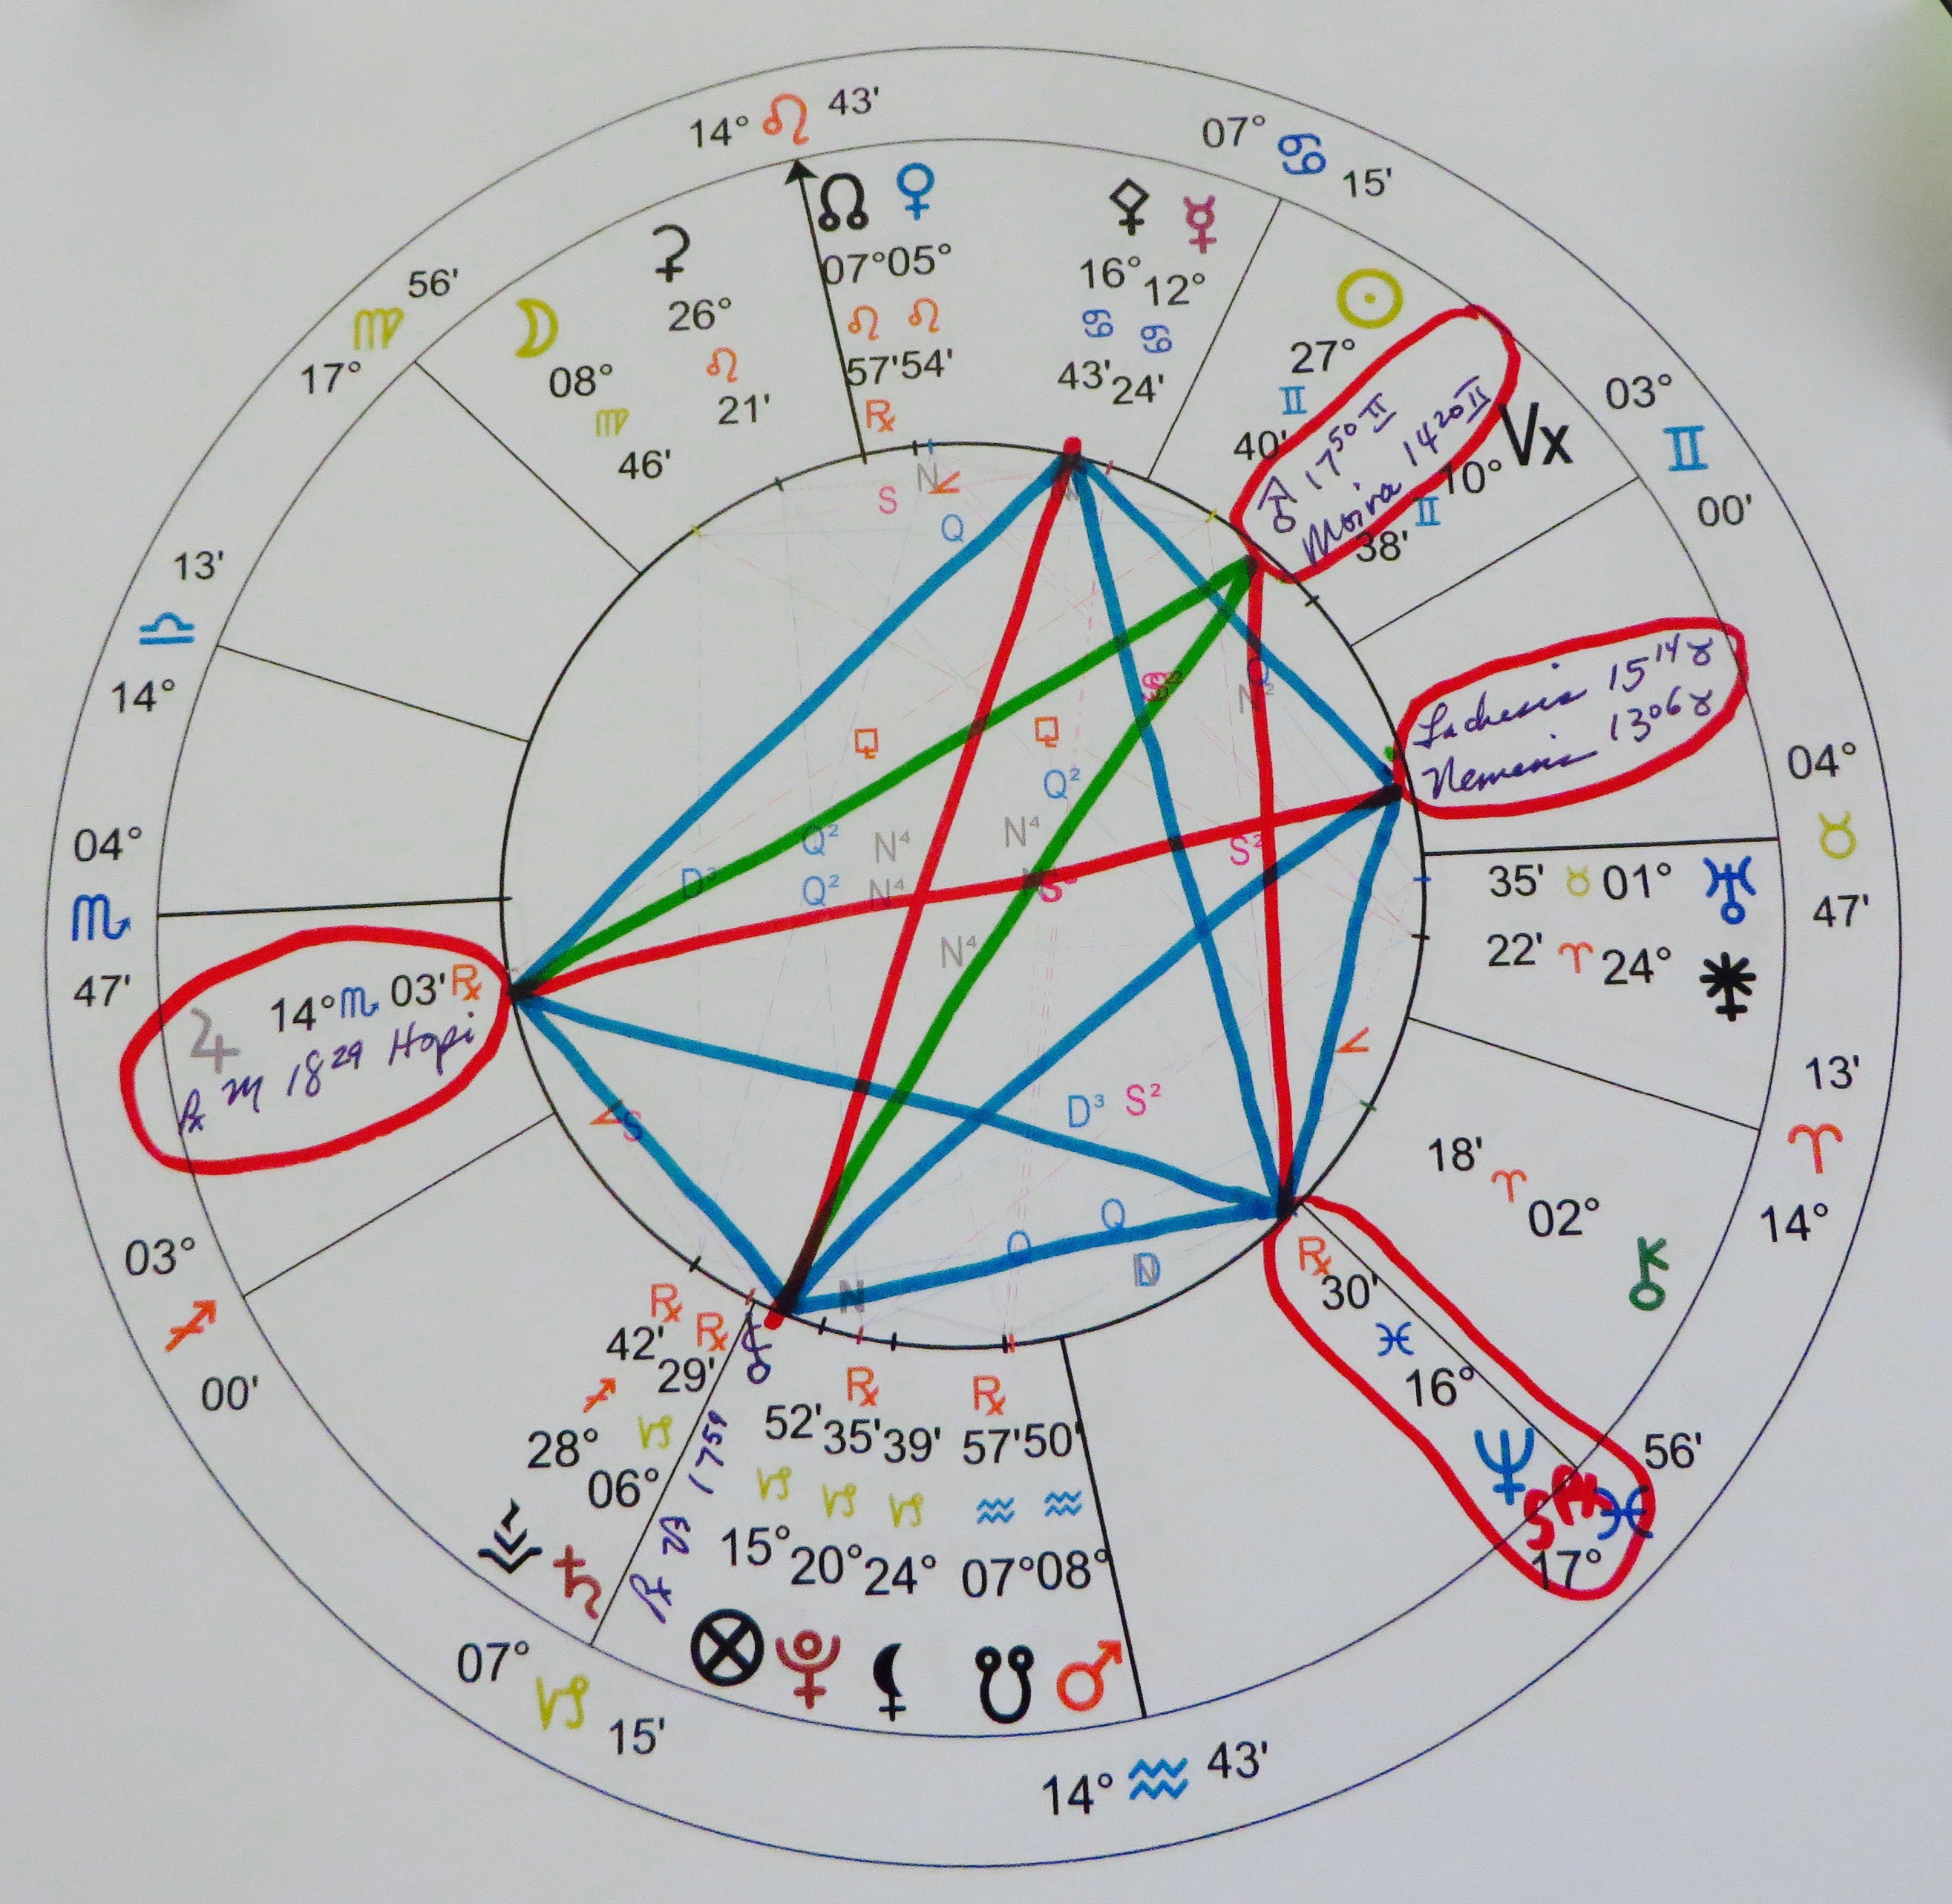 grand sextile january 23 2020 astrology